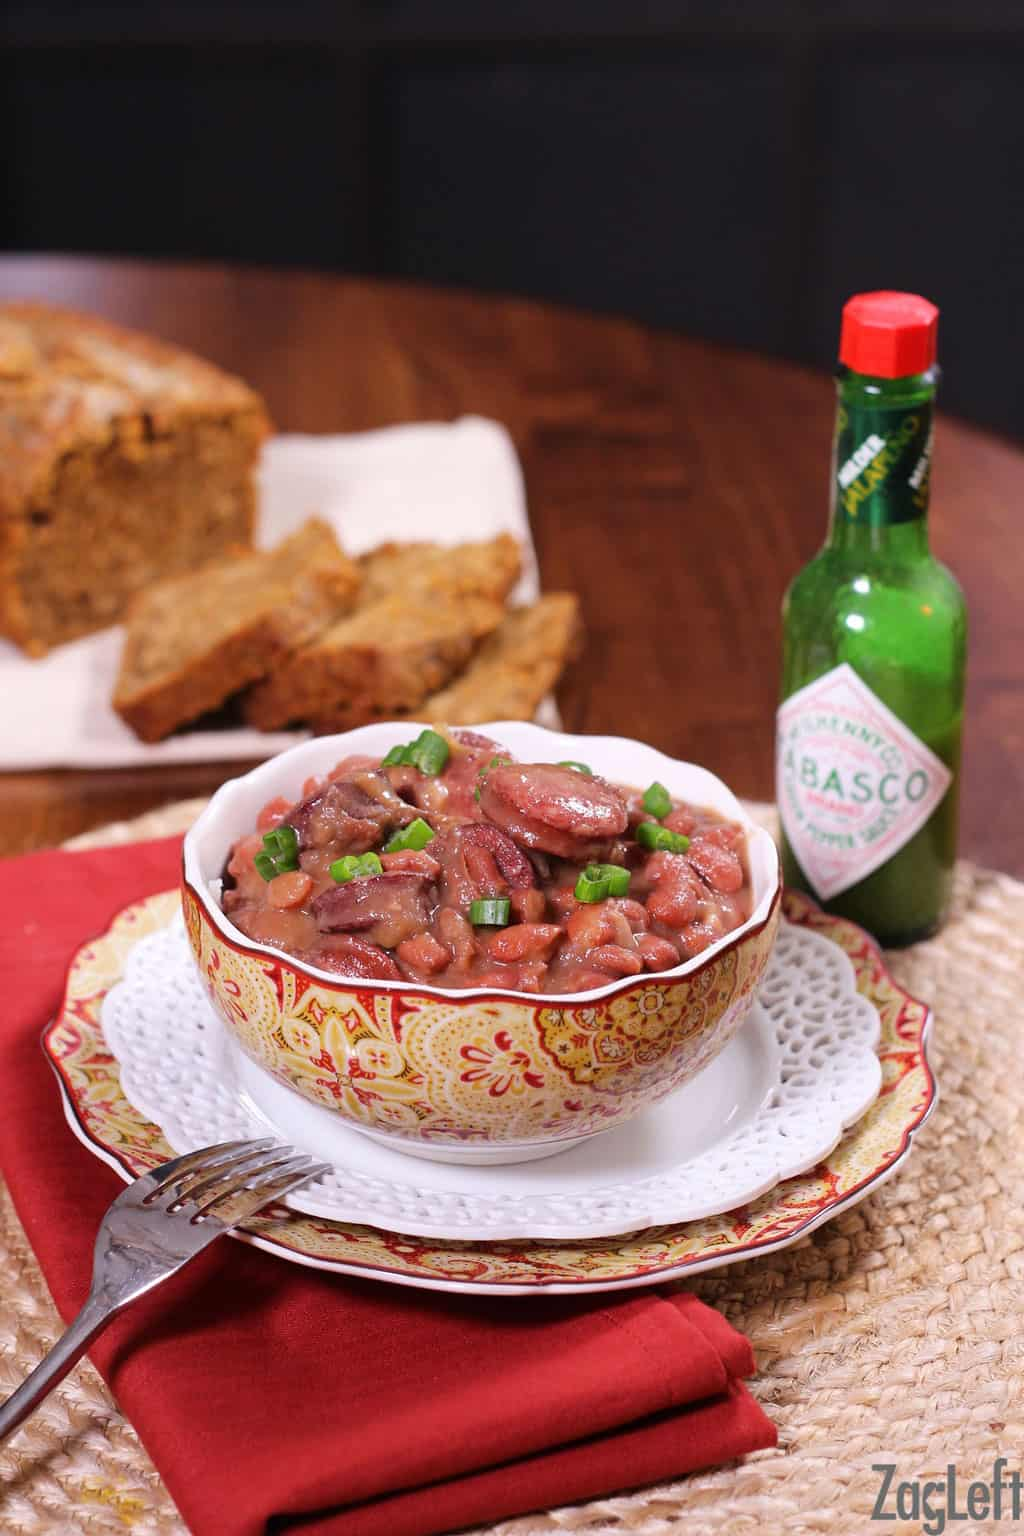 A classic New Orleans recipe for Red Beans and Rice made with a pound of red beans, spicy sausage, onions, garlic and green bell peppers. One of my family's favorite meals! www.zagleft.com